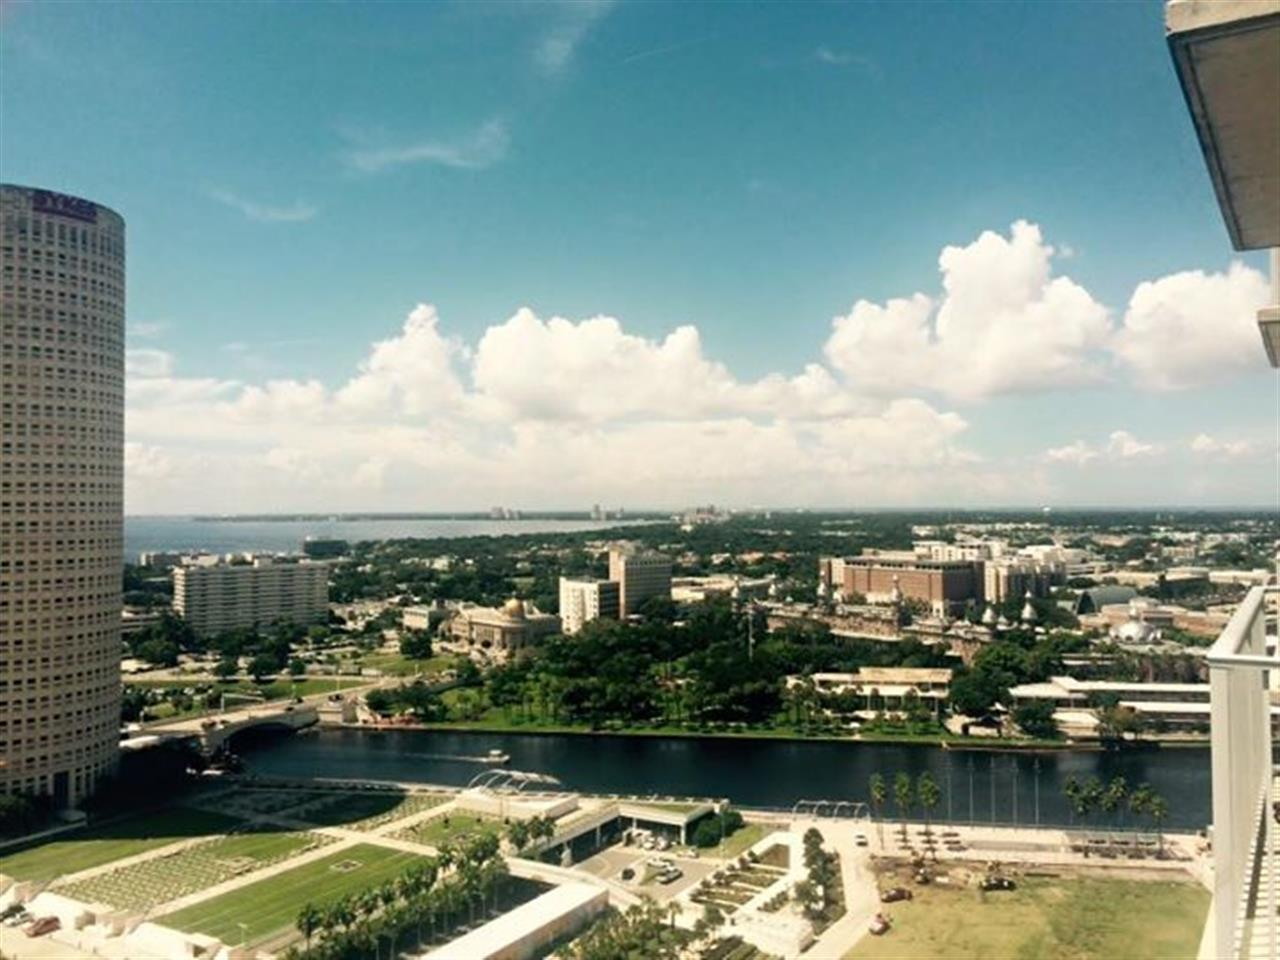 #downtowntampa #skypoint